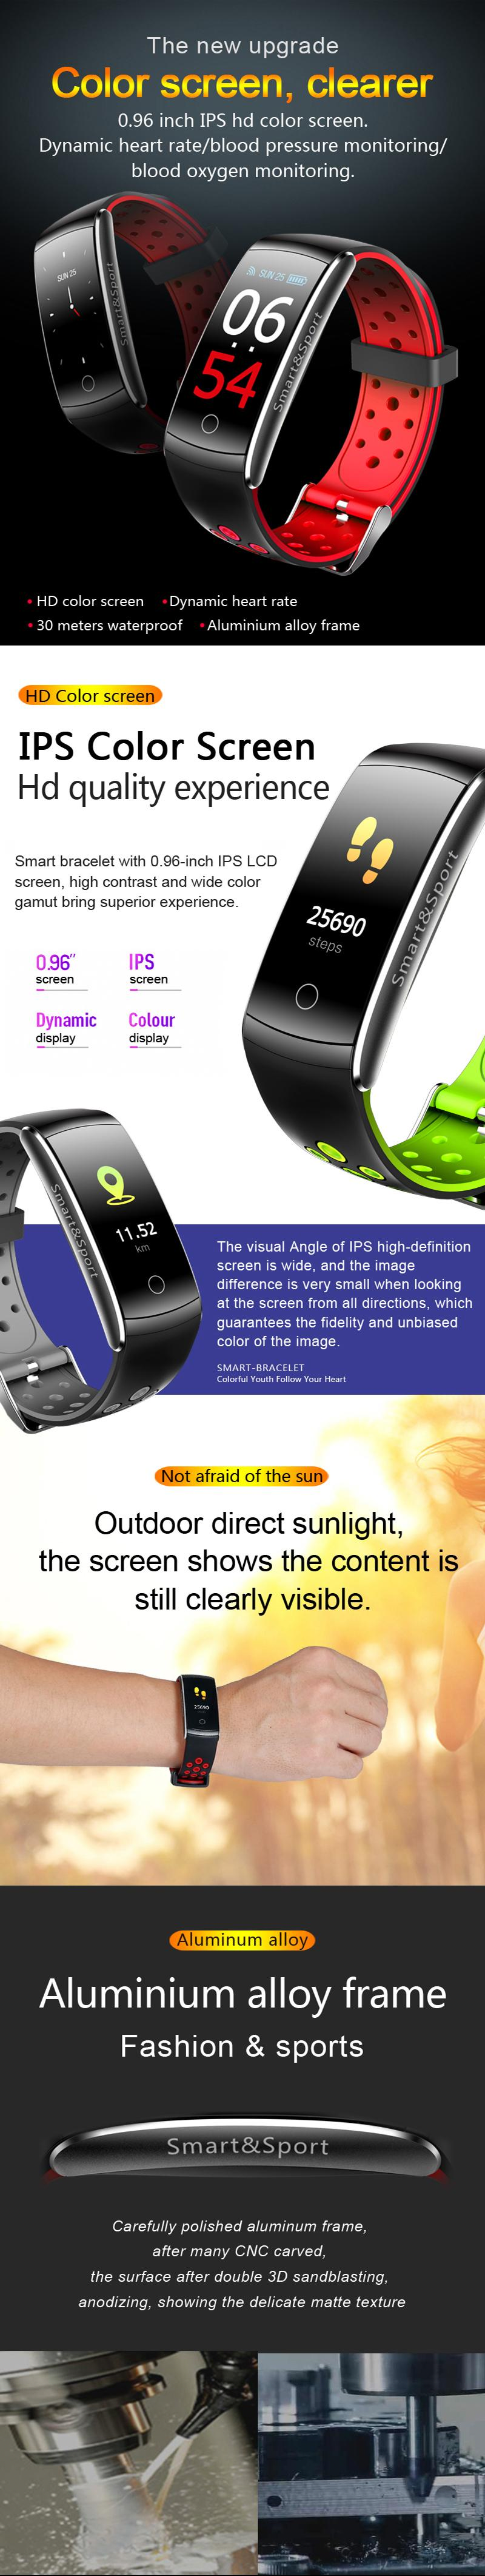 New 2019 Q8S Sport Smart Bracelet 0 96 inch IPS HD color screen Wristband  Heart Rate Blood Pressure Monitor Smart Watch IP68 Water Proof Fitness